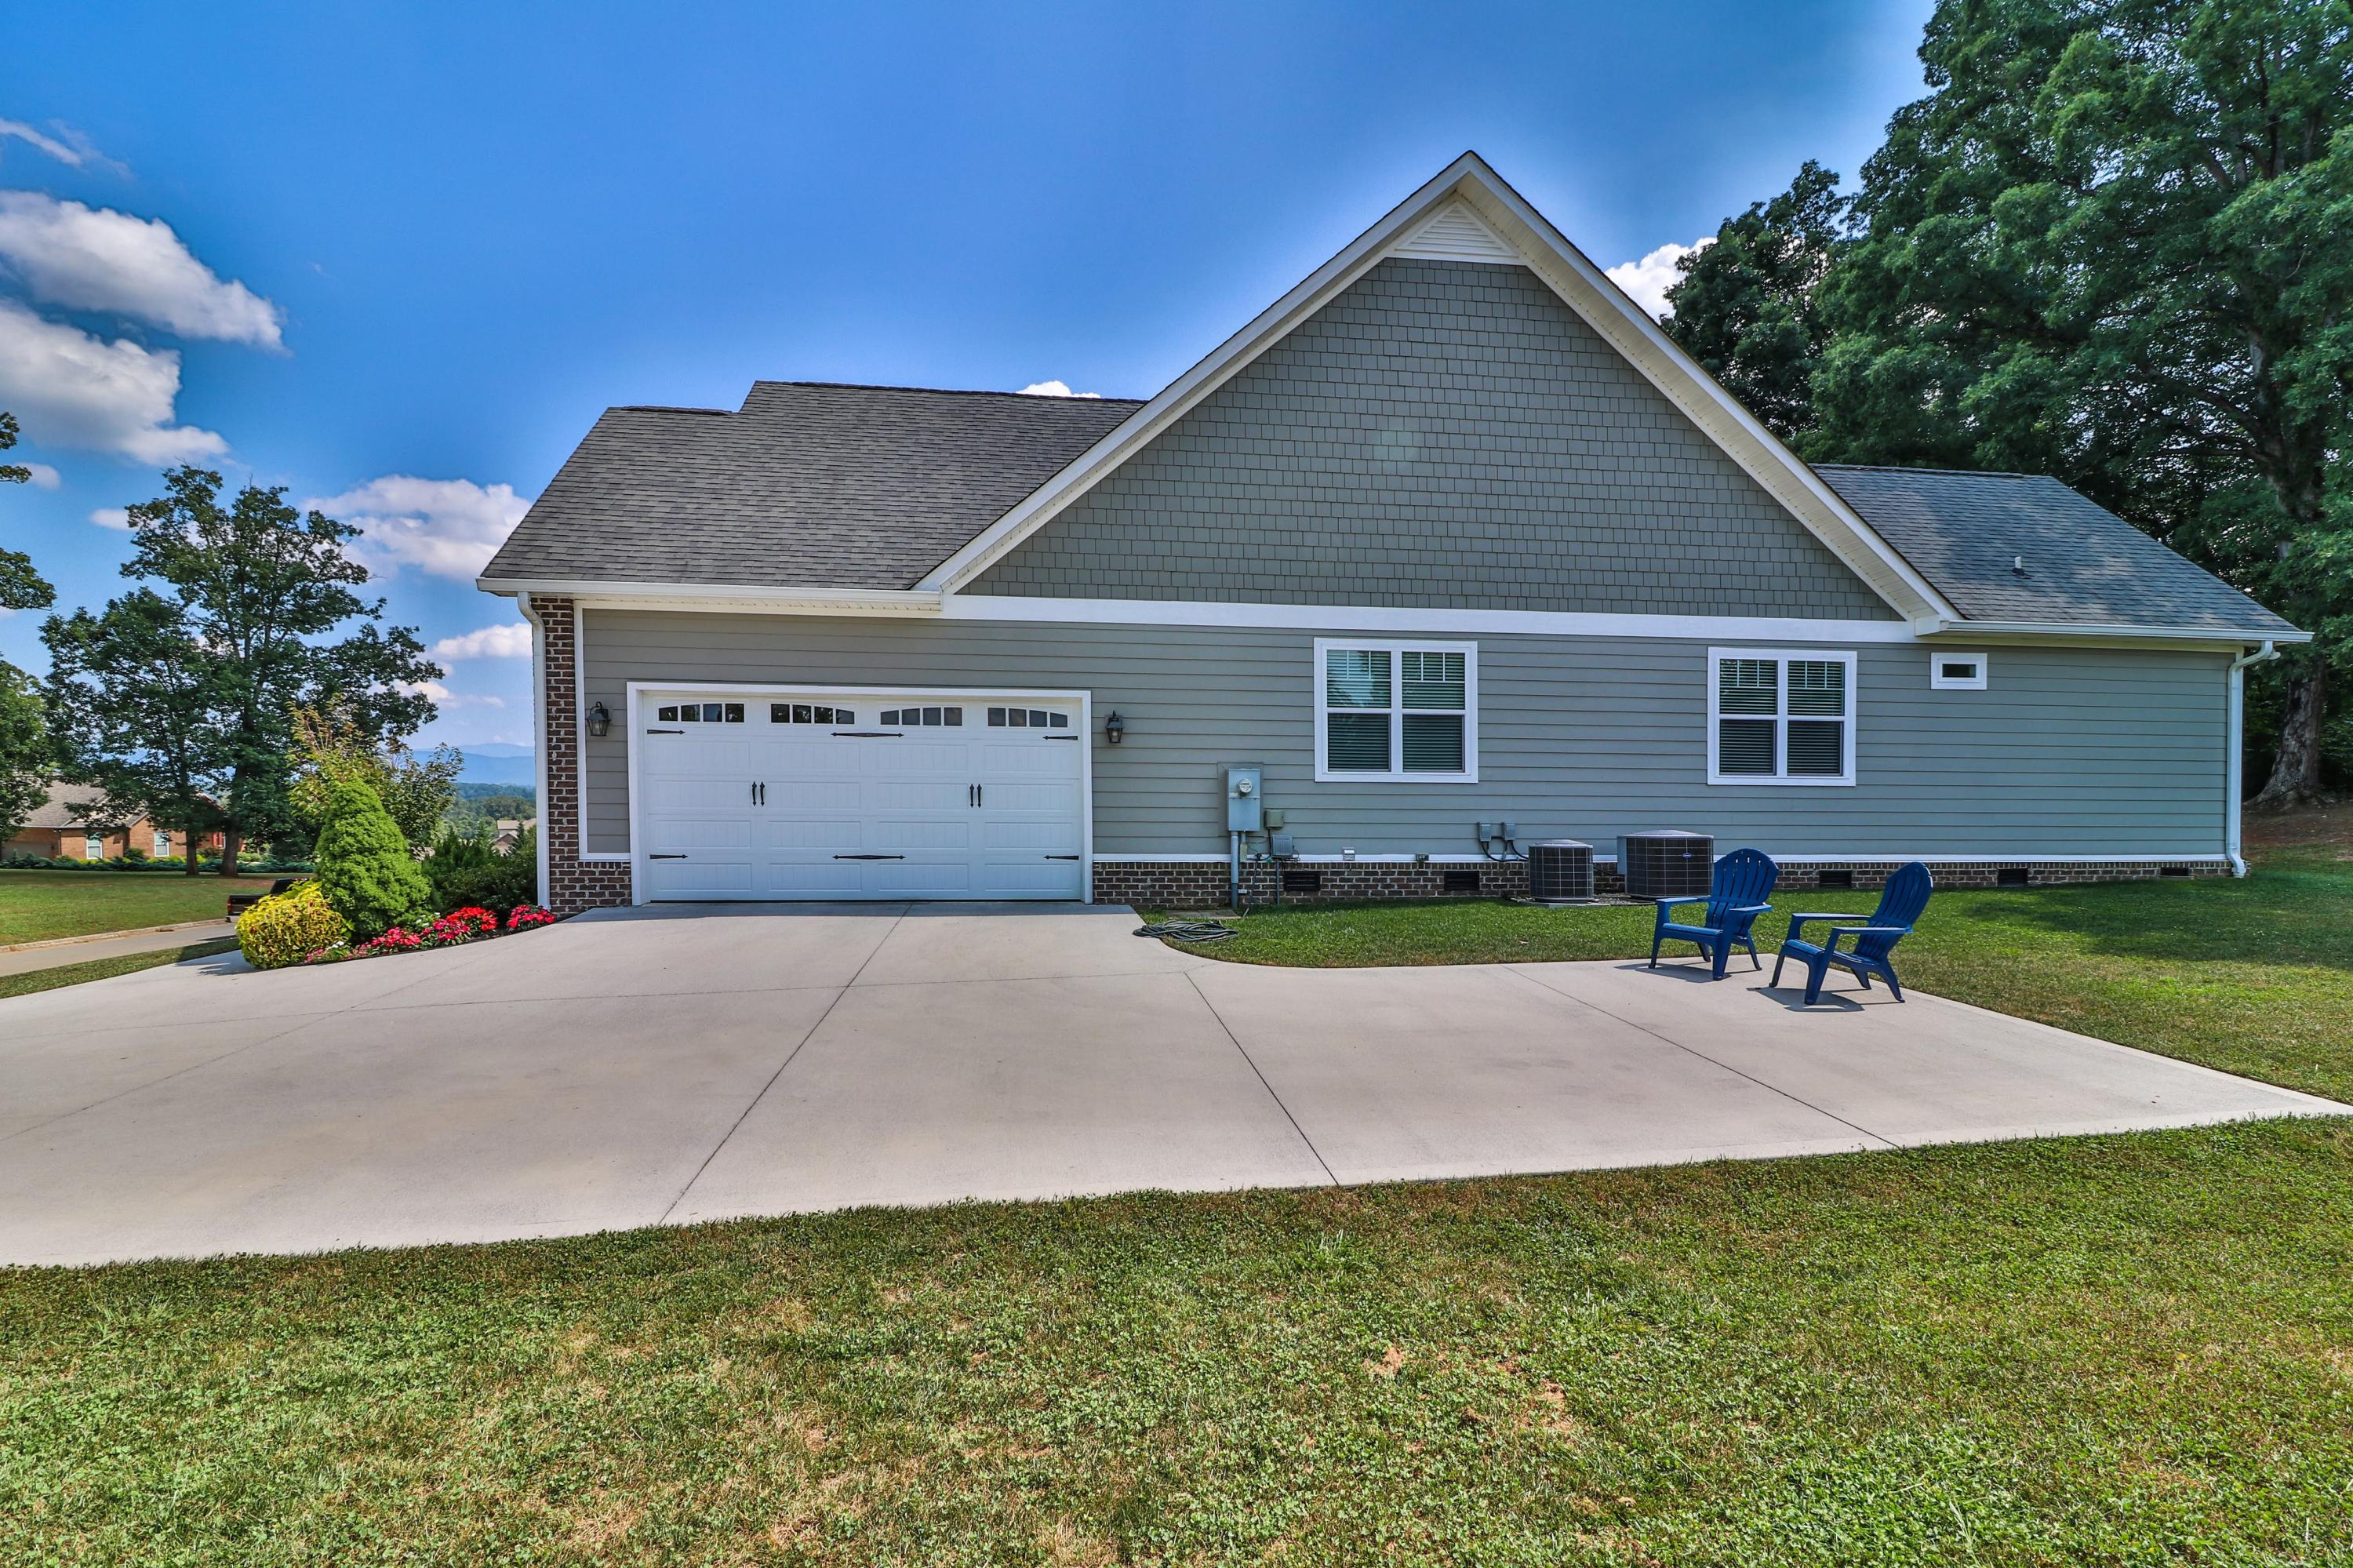 1231 Broaderick Blvd, Maryville, Tennessee 37801, 3 Bedrooms Bedrooms, ,2 BathroomsBathrooms,Single Family,For Sale,Broaderick,1090430